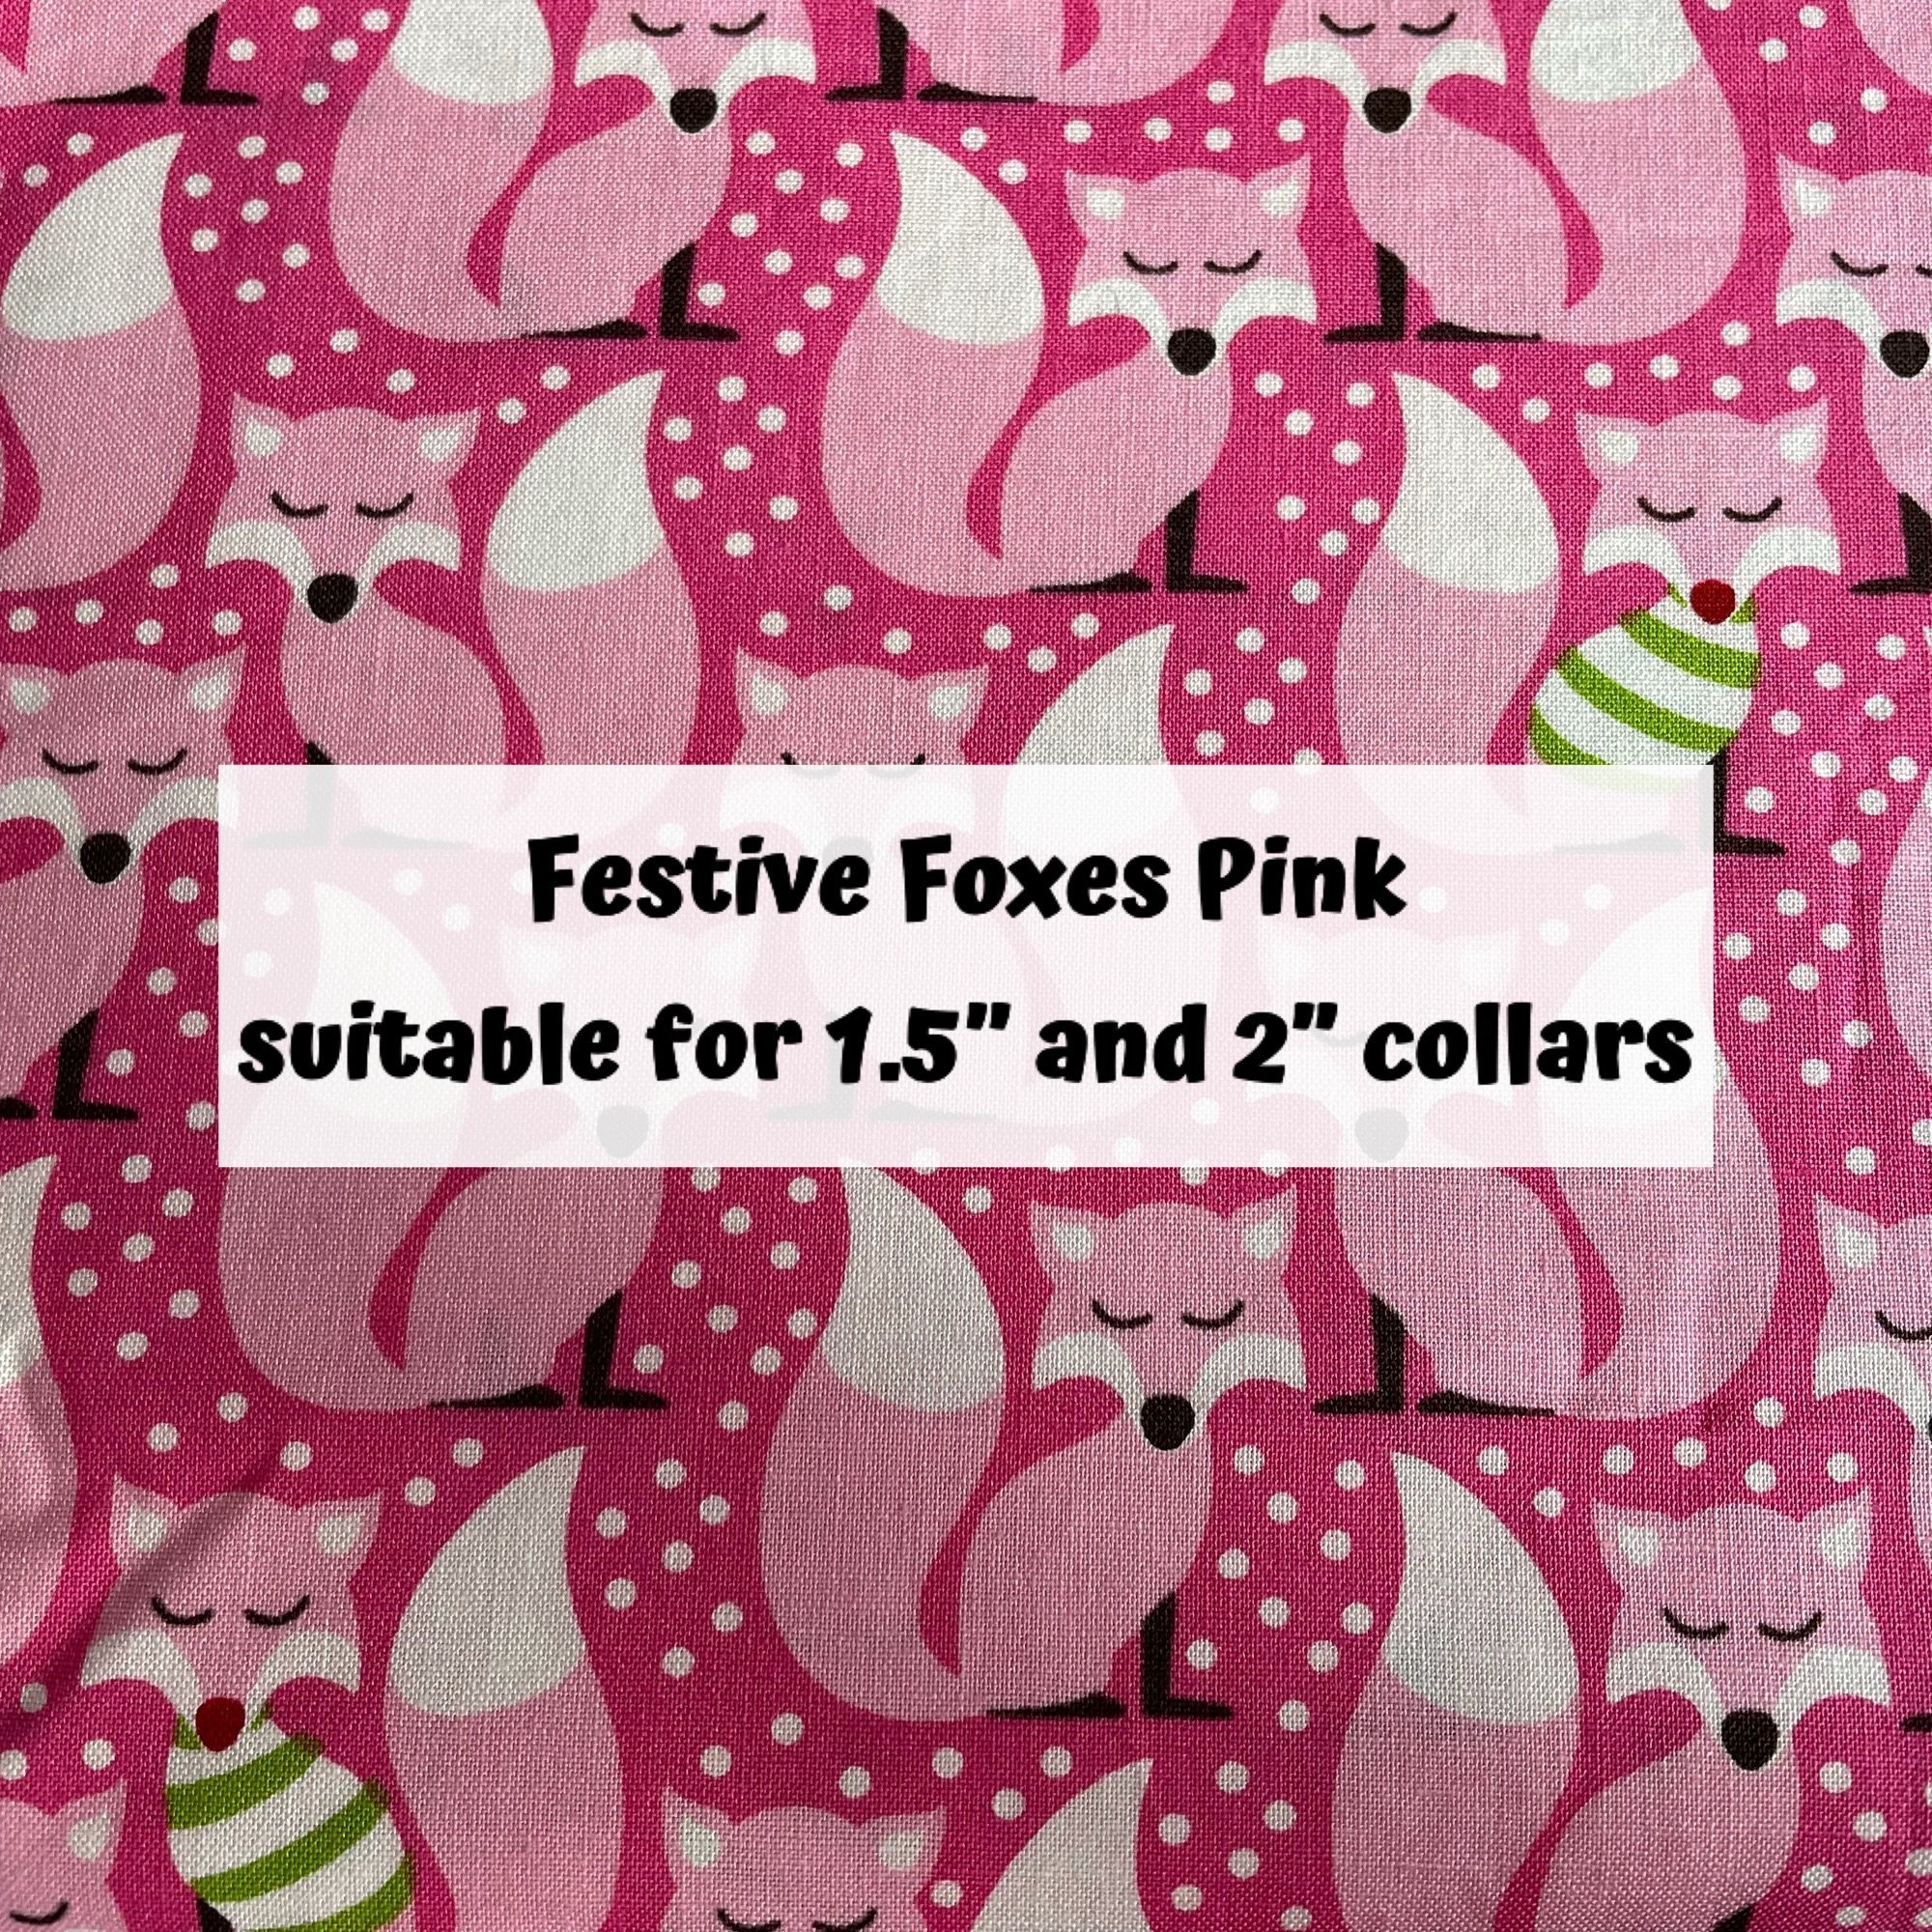 Festive Foxes Pink